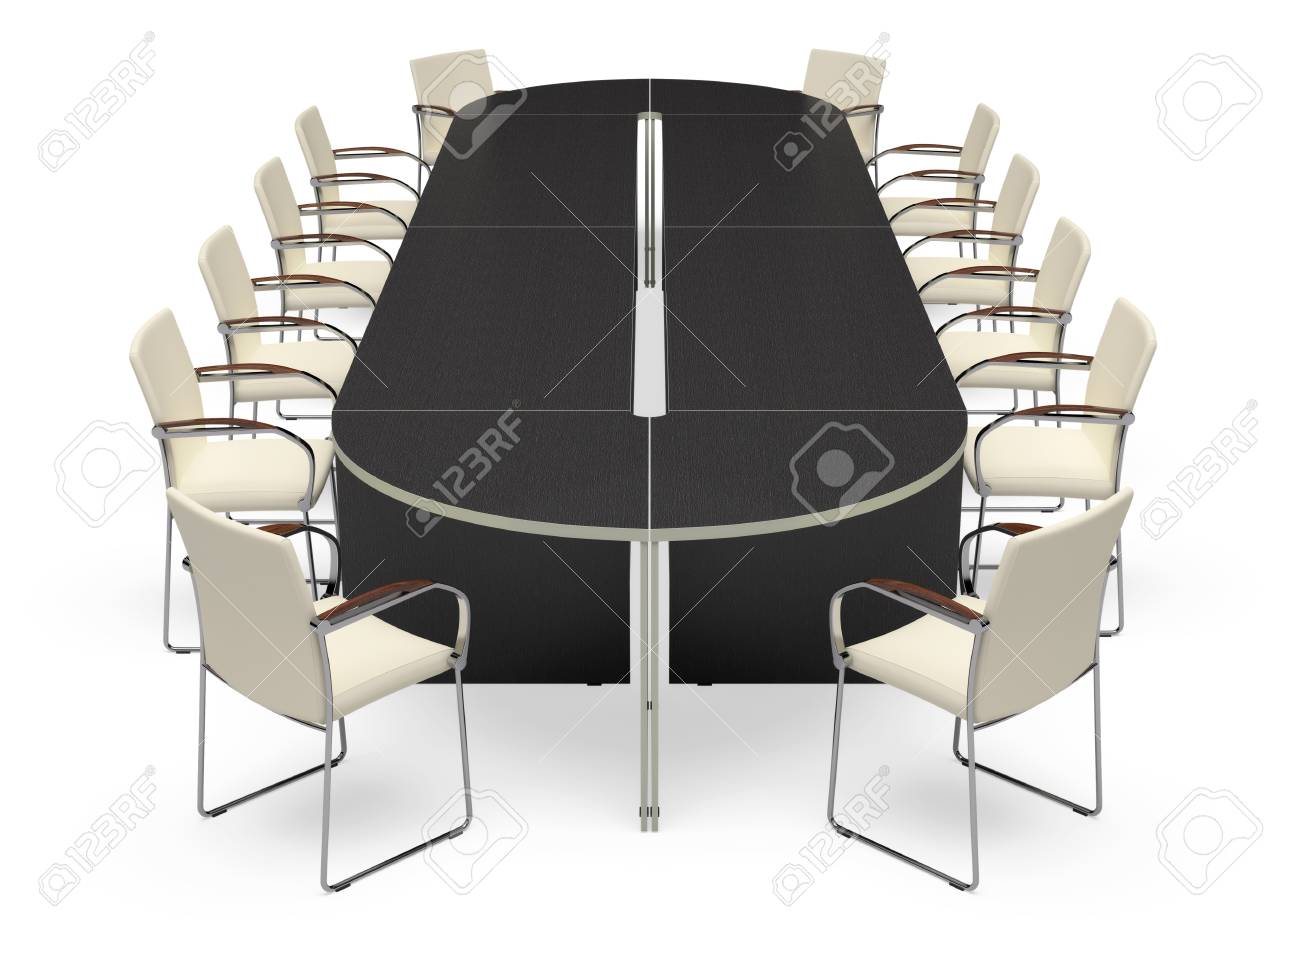 Office desk on a white background. It's 3D image. Stock Photo - 8736611